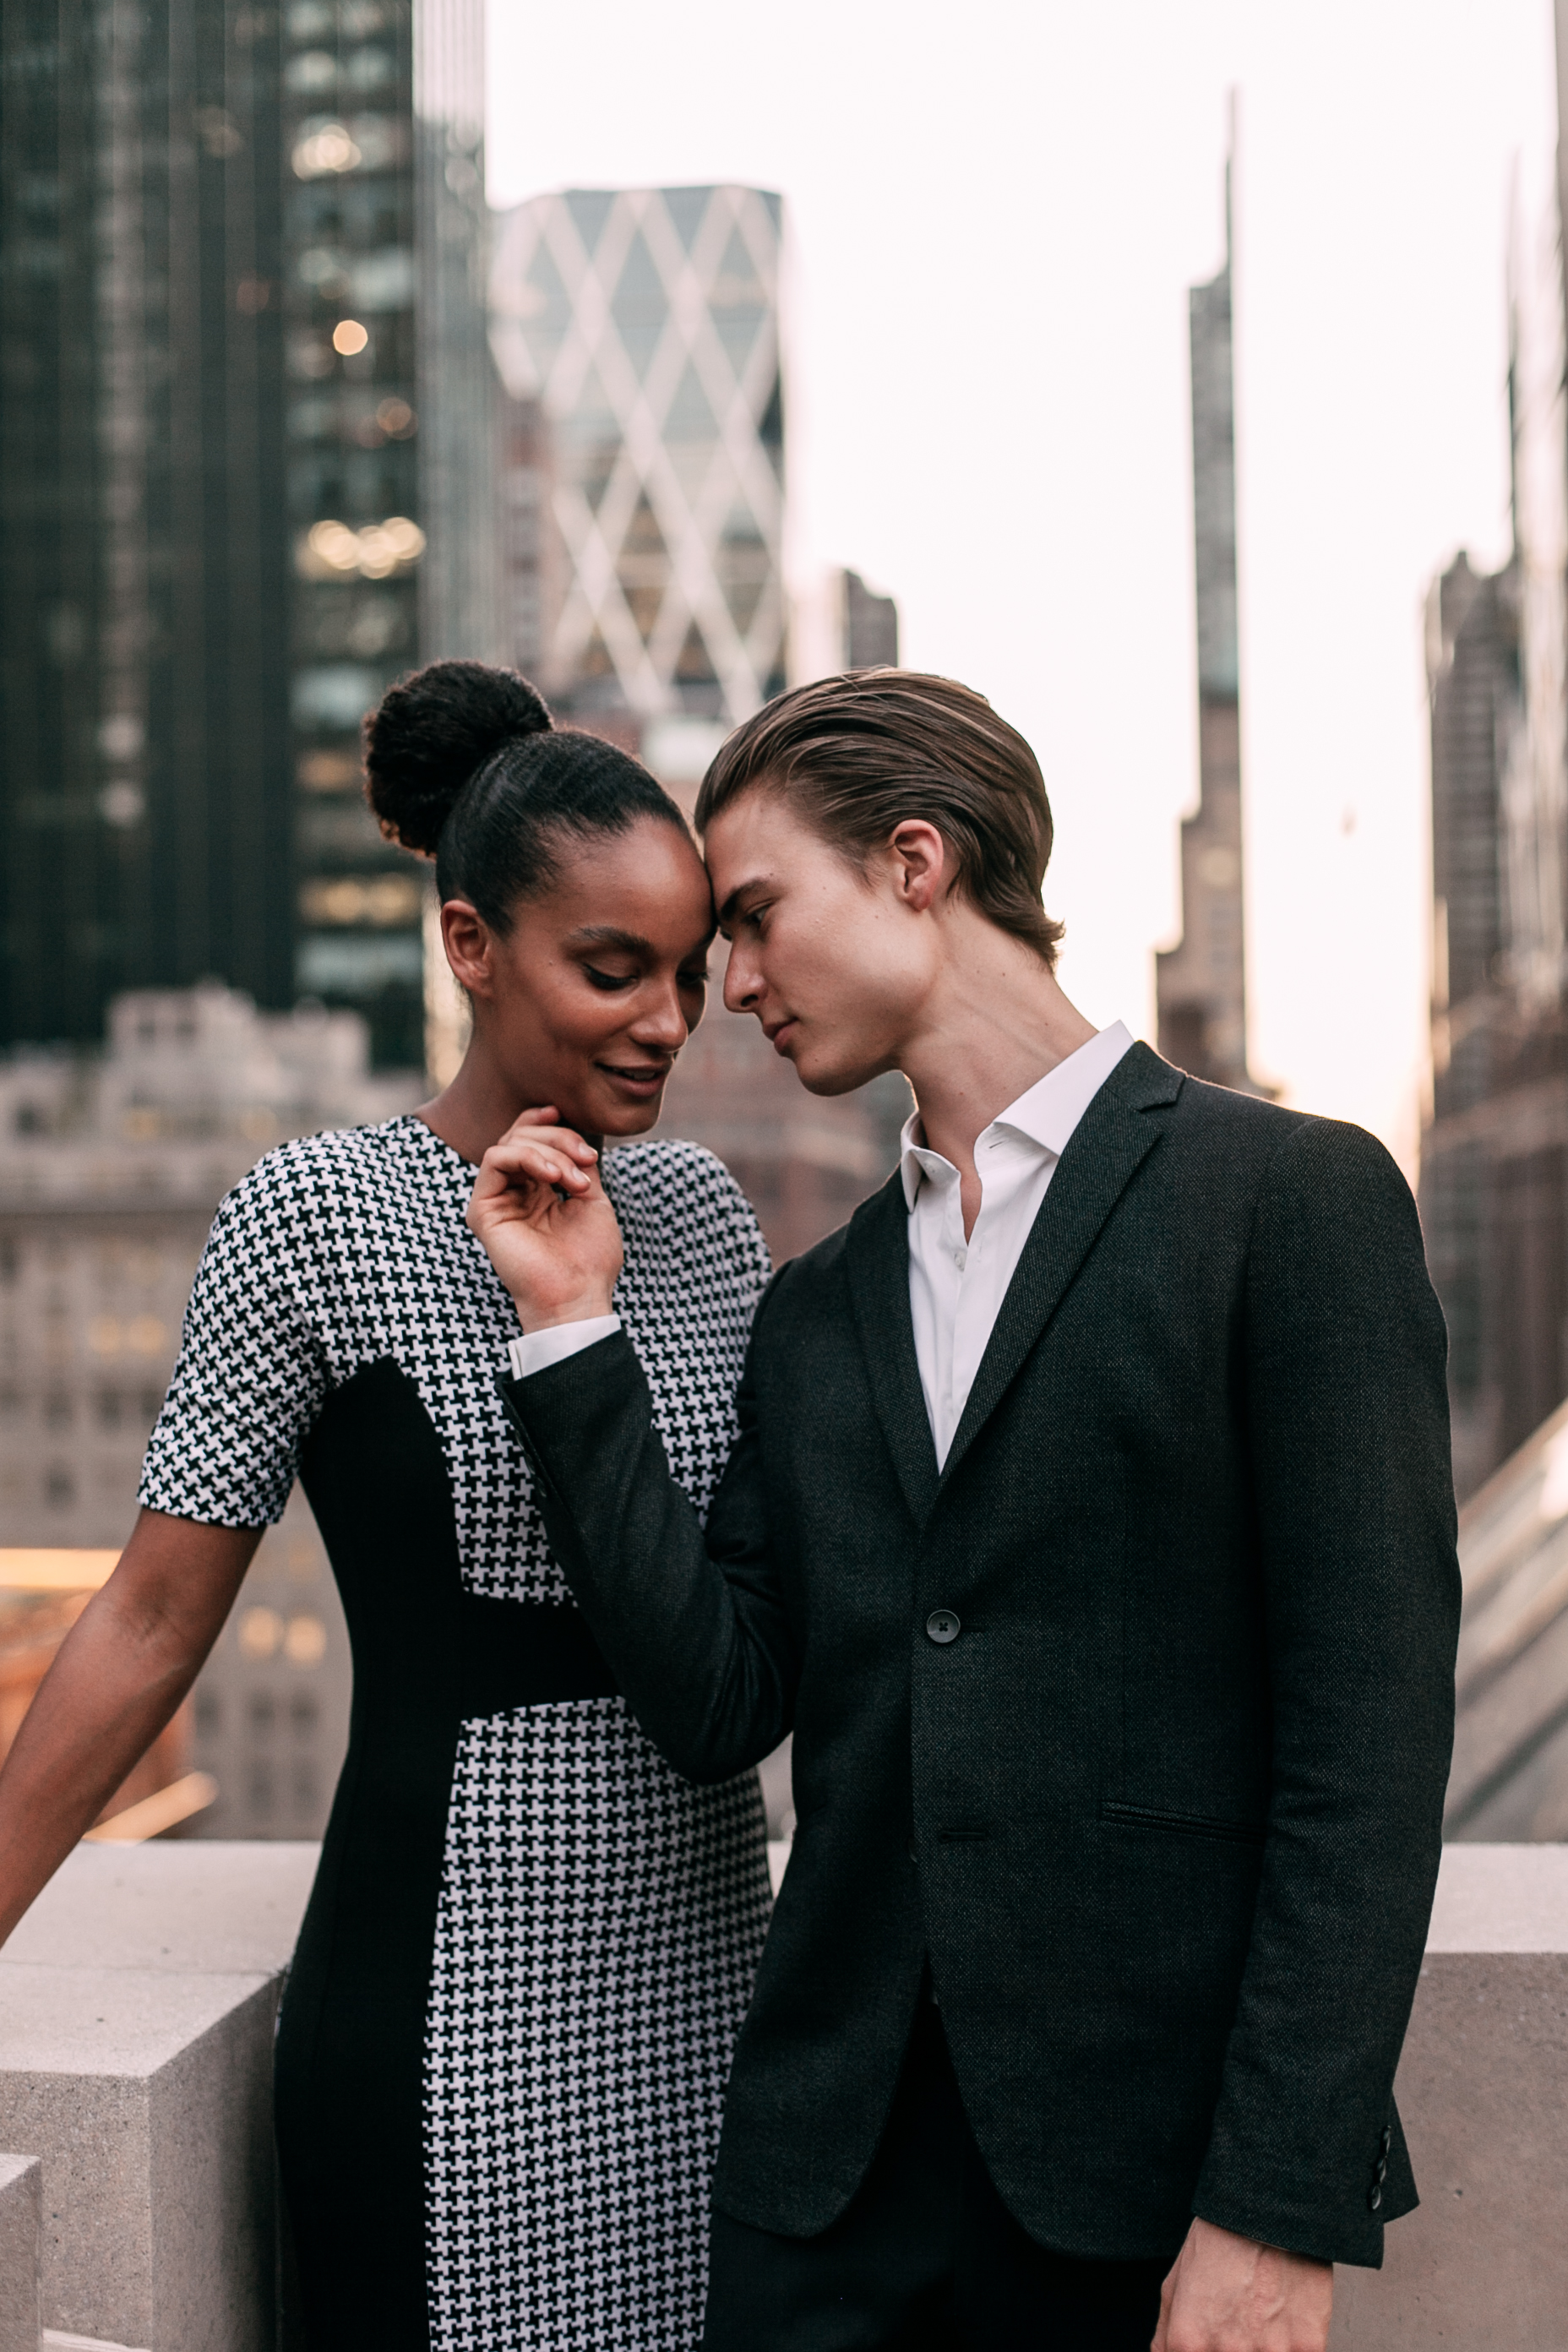 New York City engagement photographer, New York engagement photographer, NYC engagement photographer, NYC rooftop engagement session, interracial couple, New York rooftop engagement session